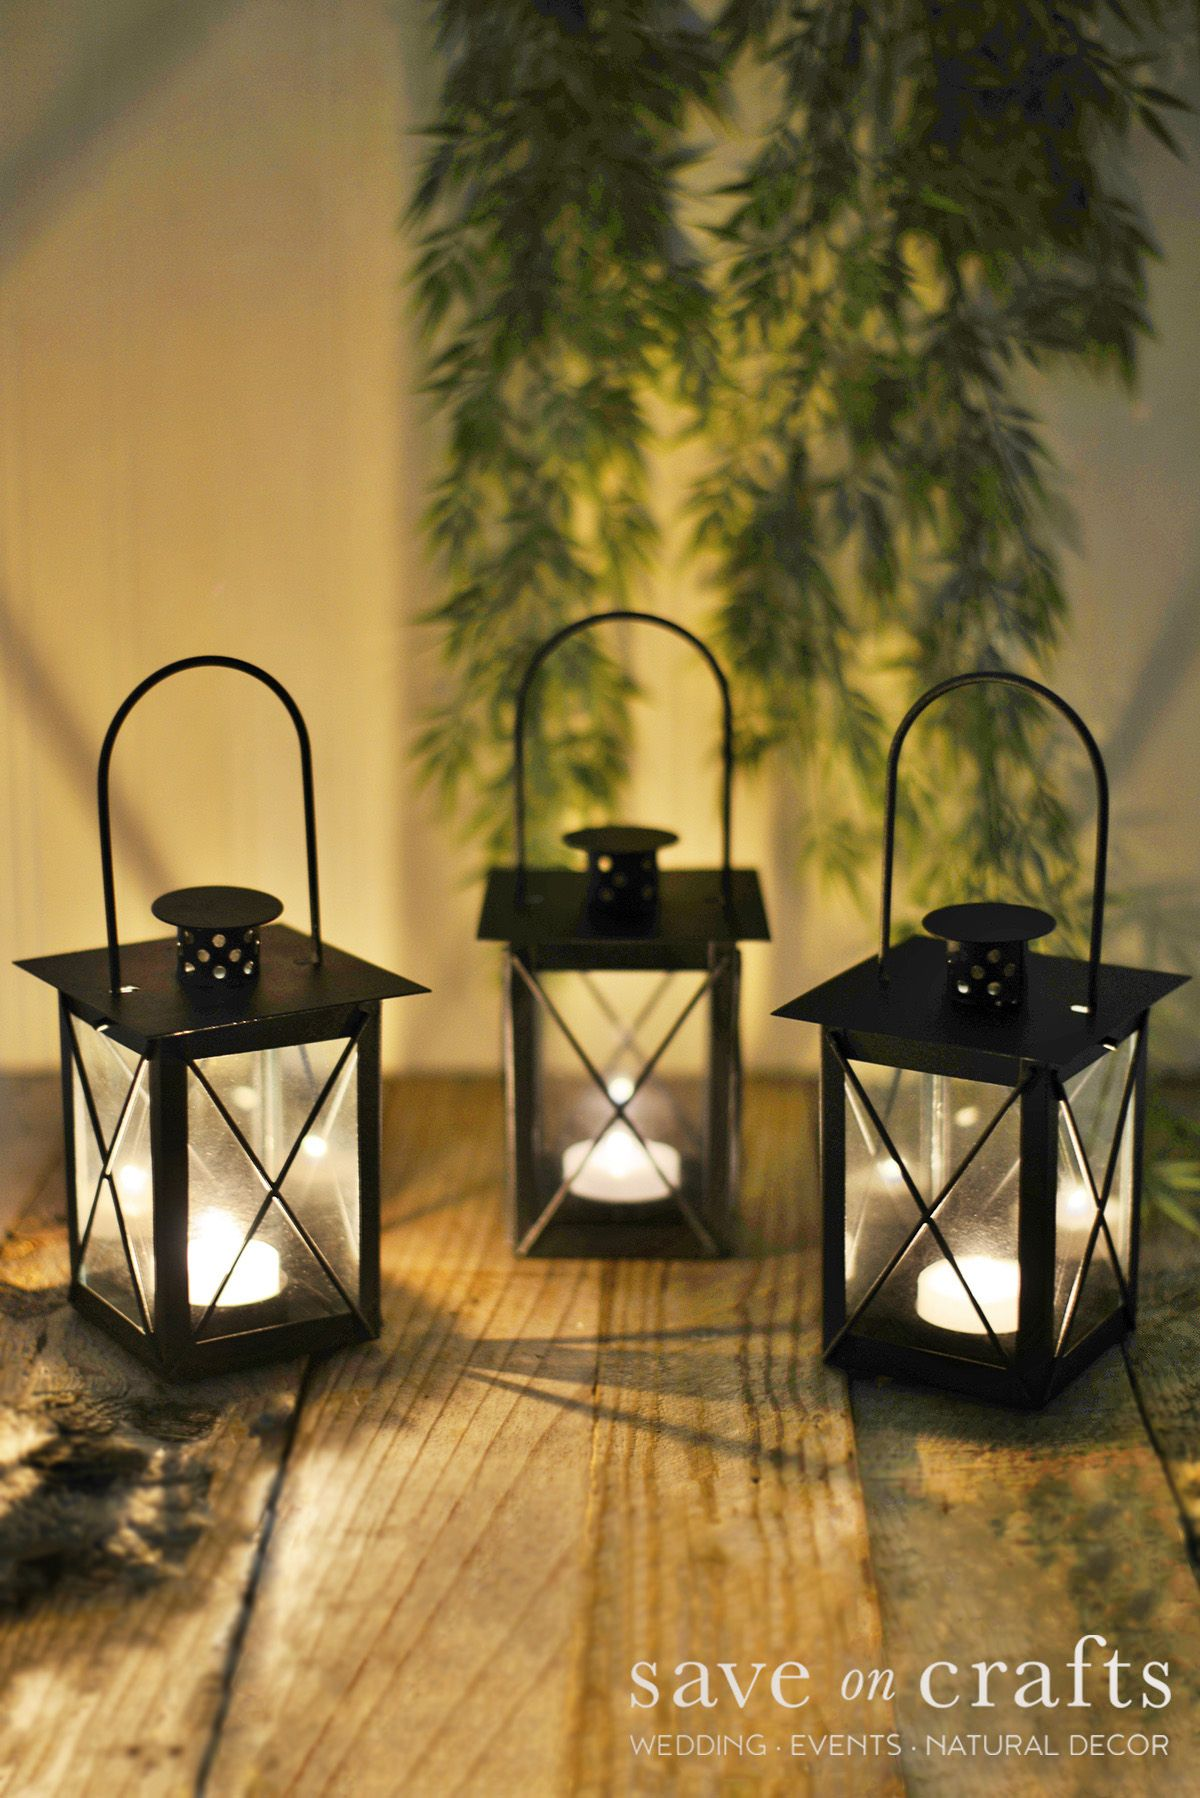 Lanterns: Candle, Solar & Battery Operated | Rustic ...